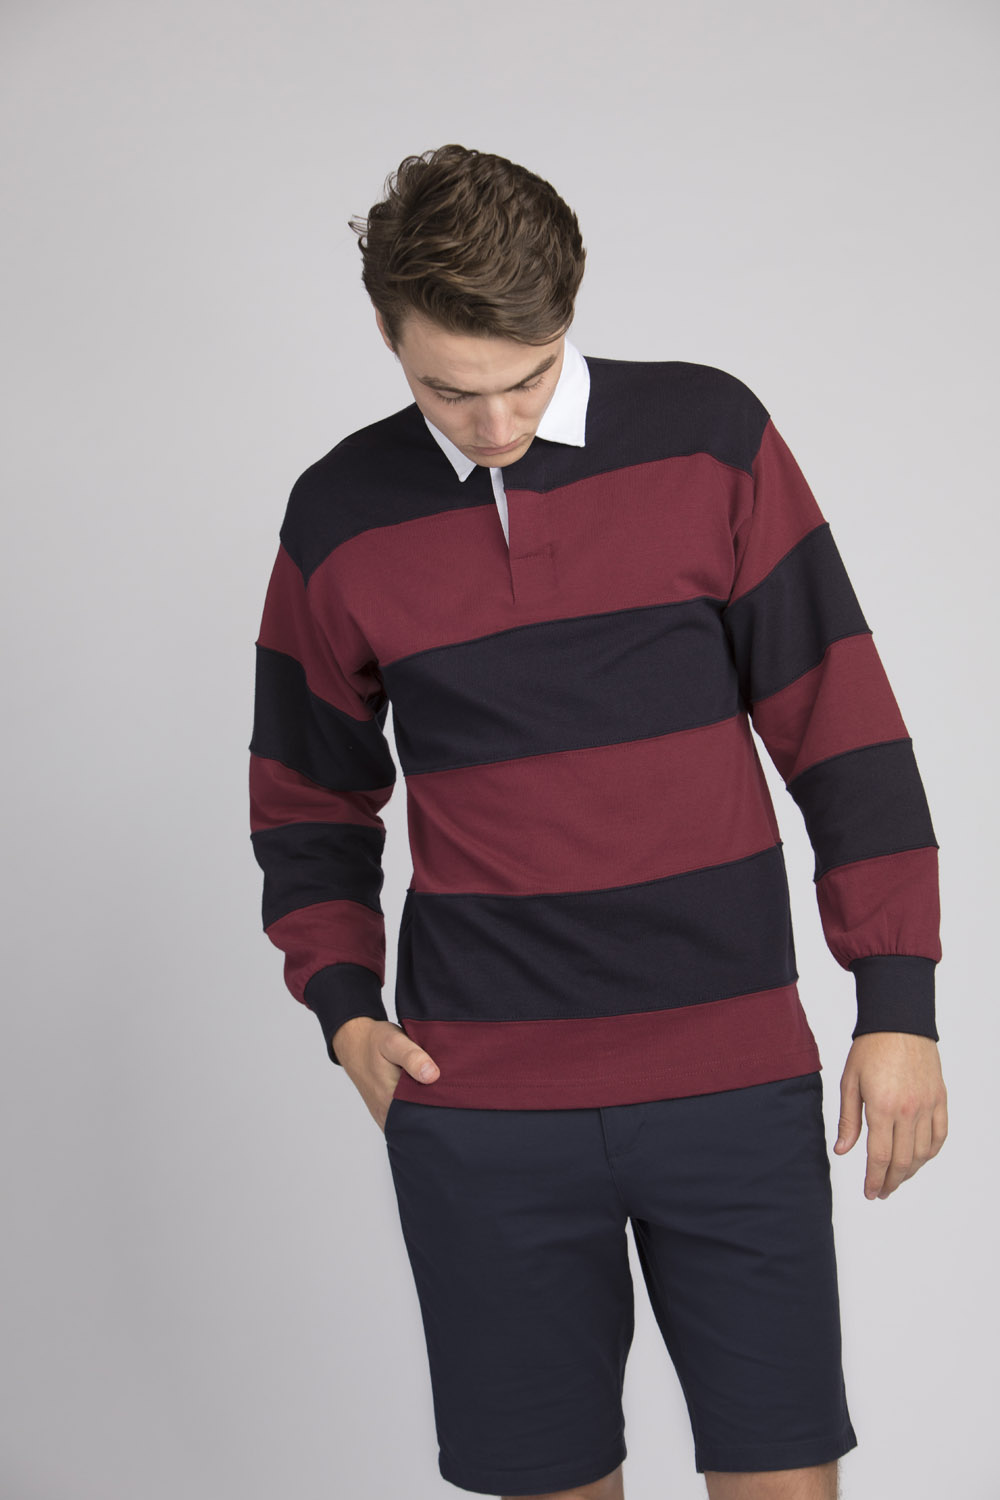 64fca219a9c FR008 SEWN STRIPE L/S RUGBY SHIRT – Front Row & Co